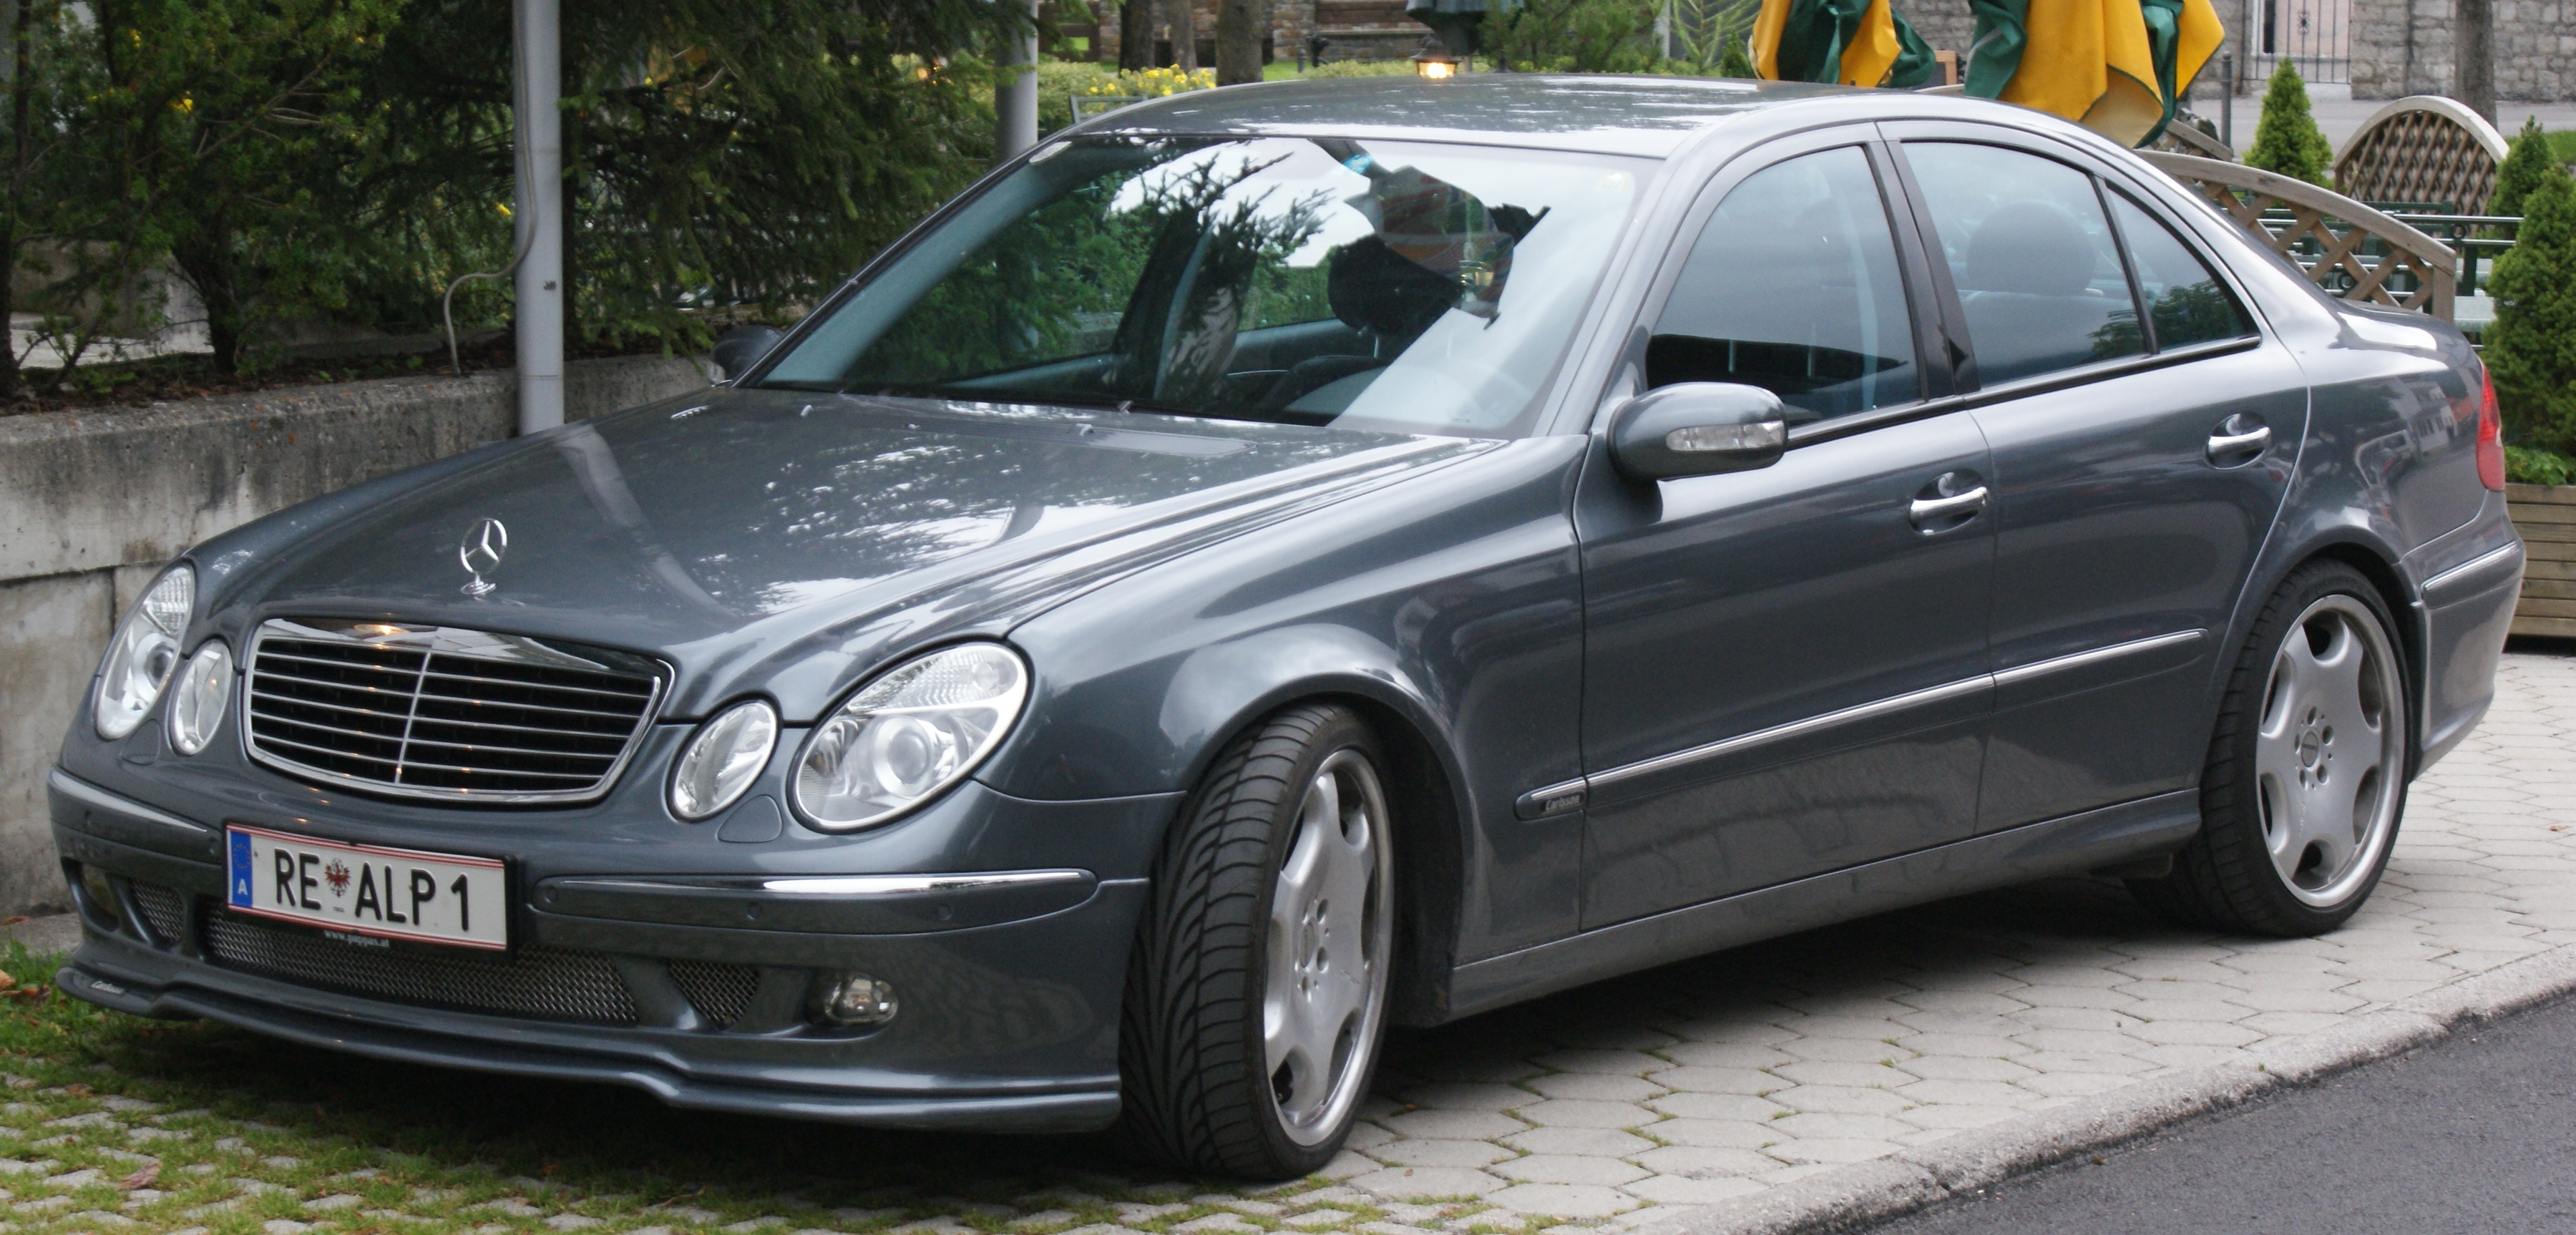 трансфер, трансфер мюнхен, мерседес класса е, mercedes e class, munich travel, transfer